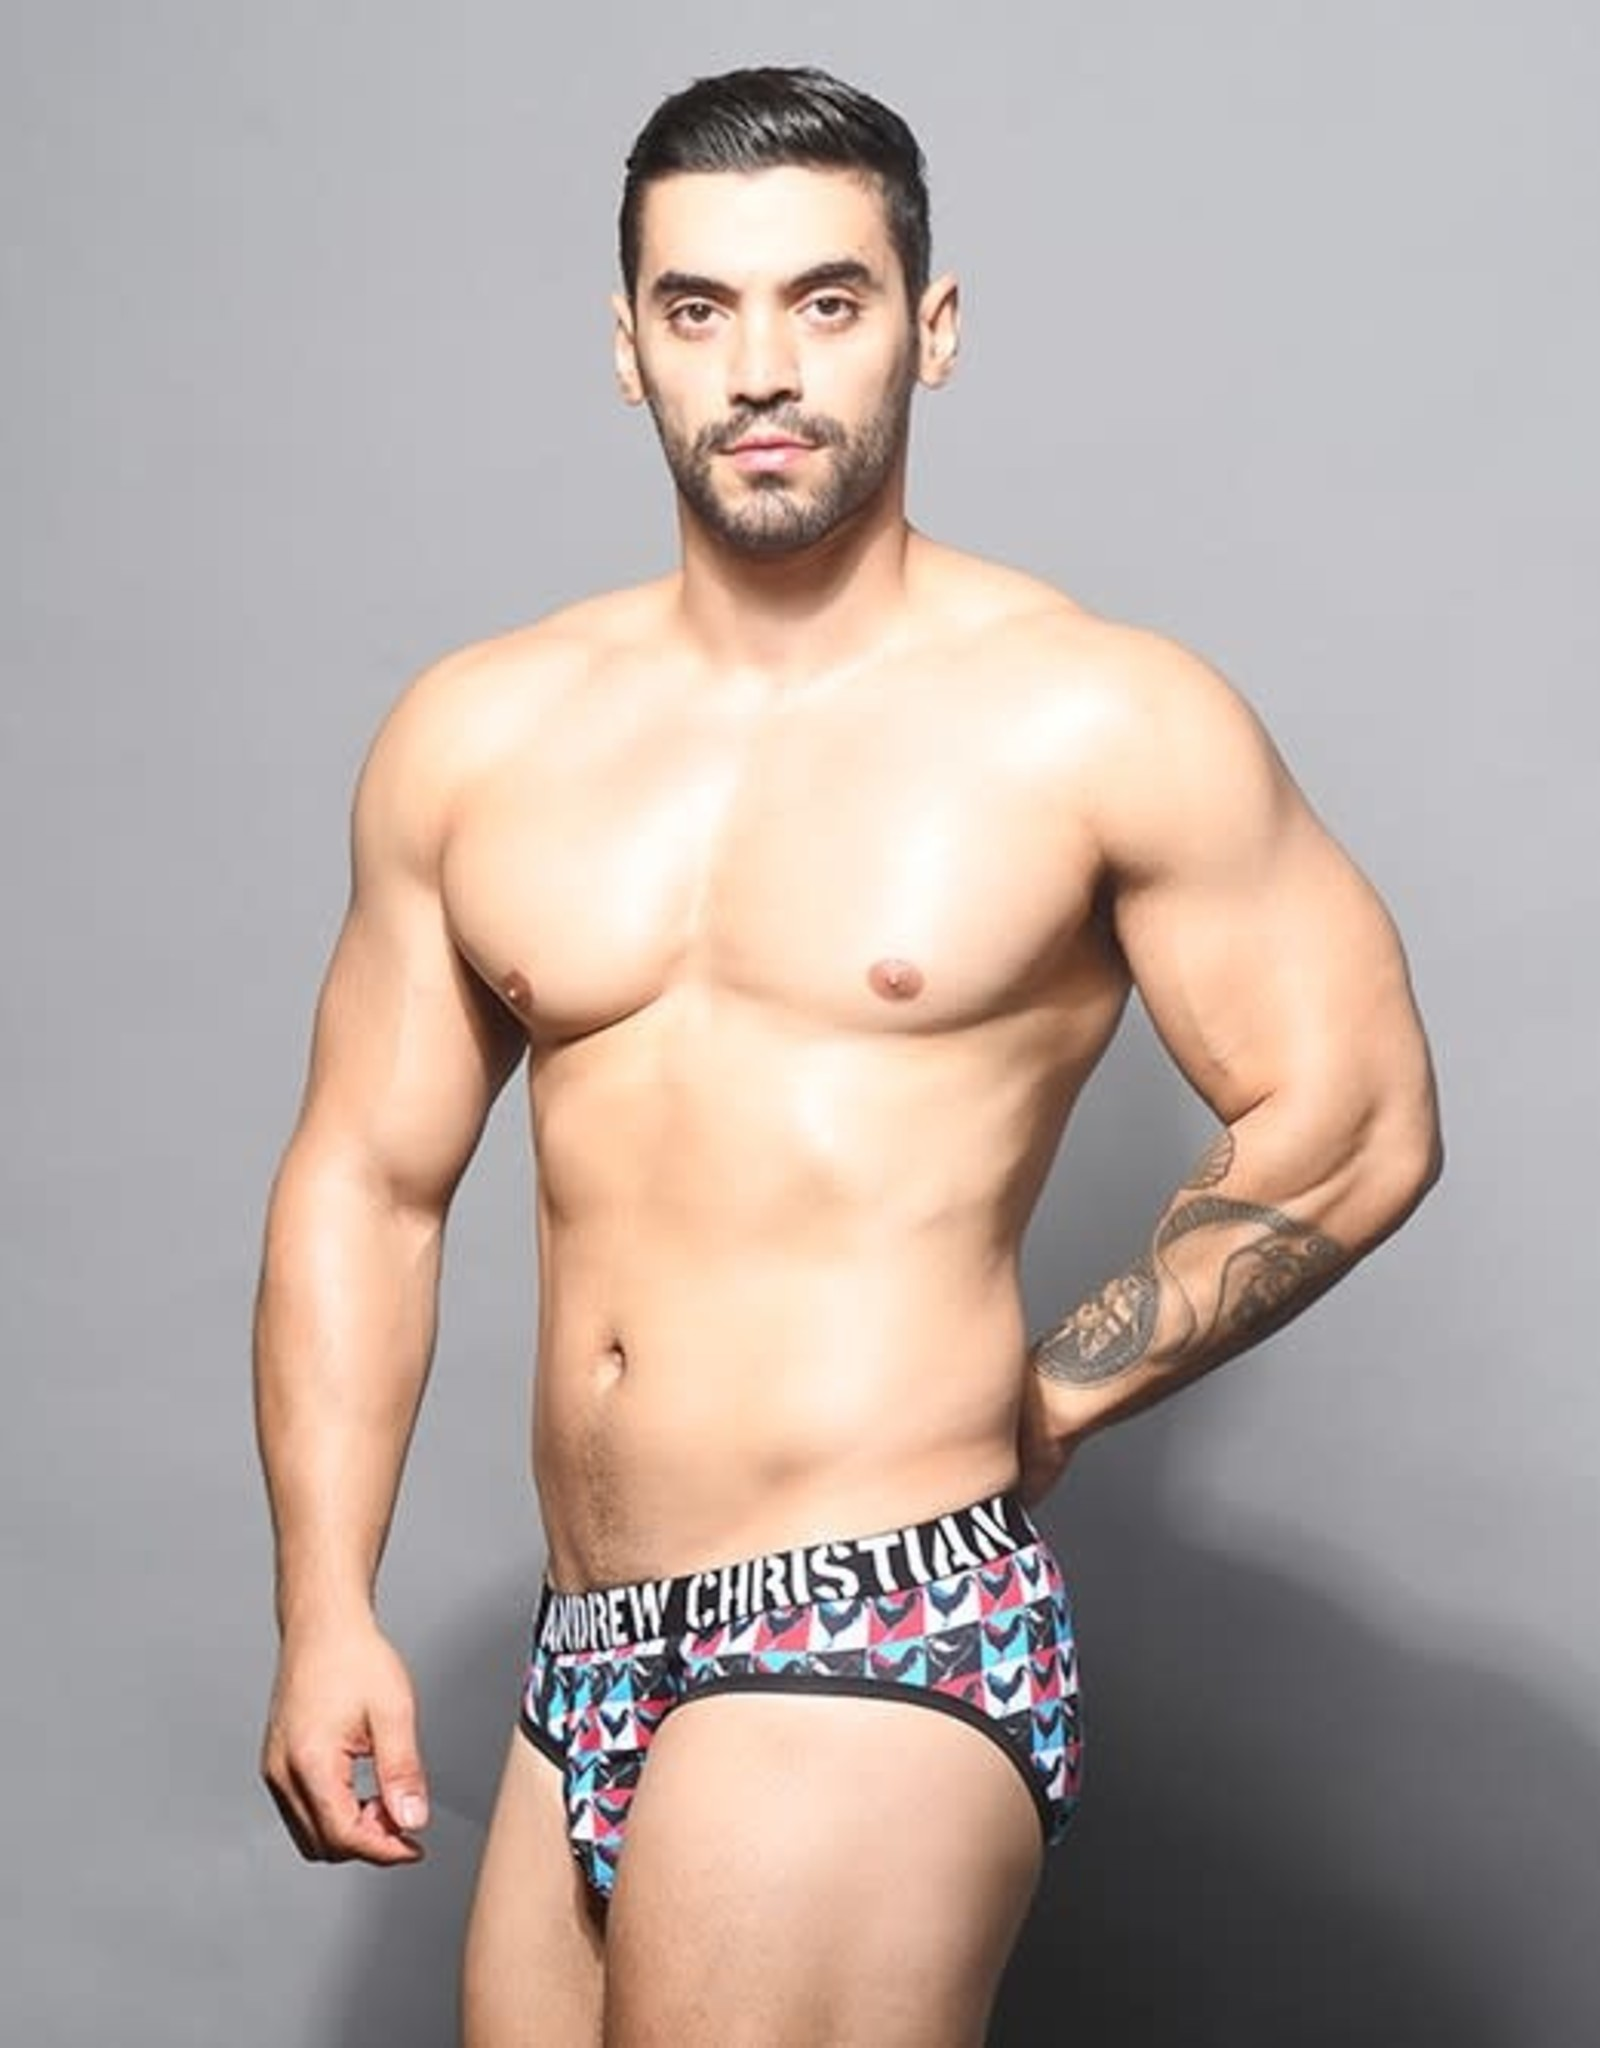 Andrew Christian Cock Brief w/Almost Naked